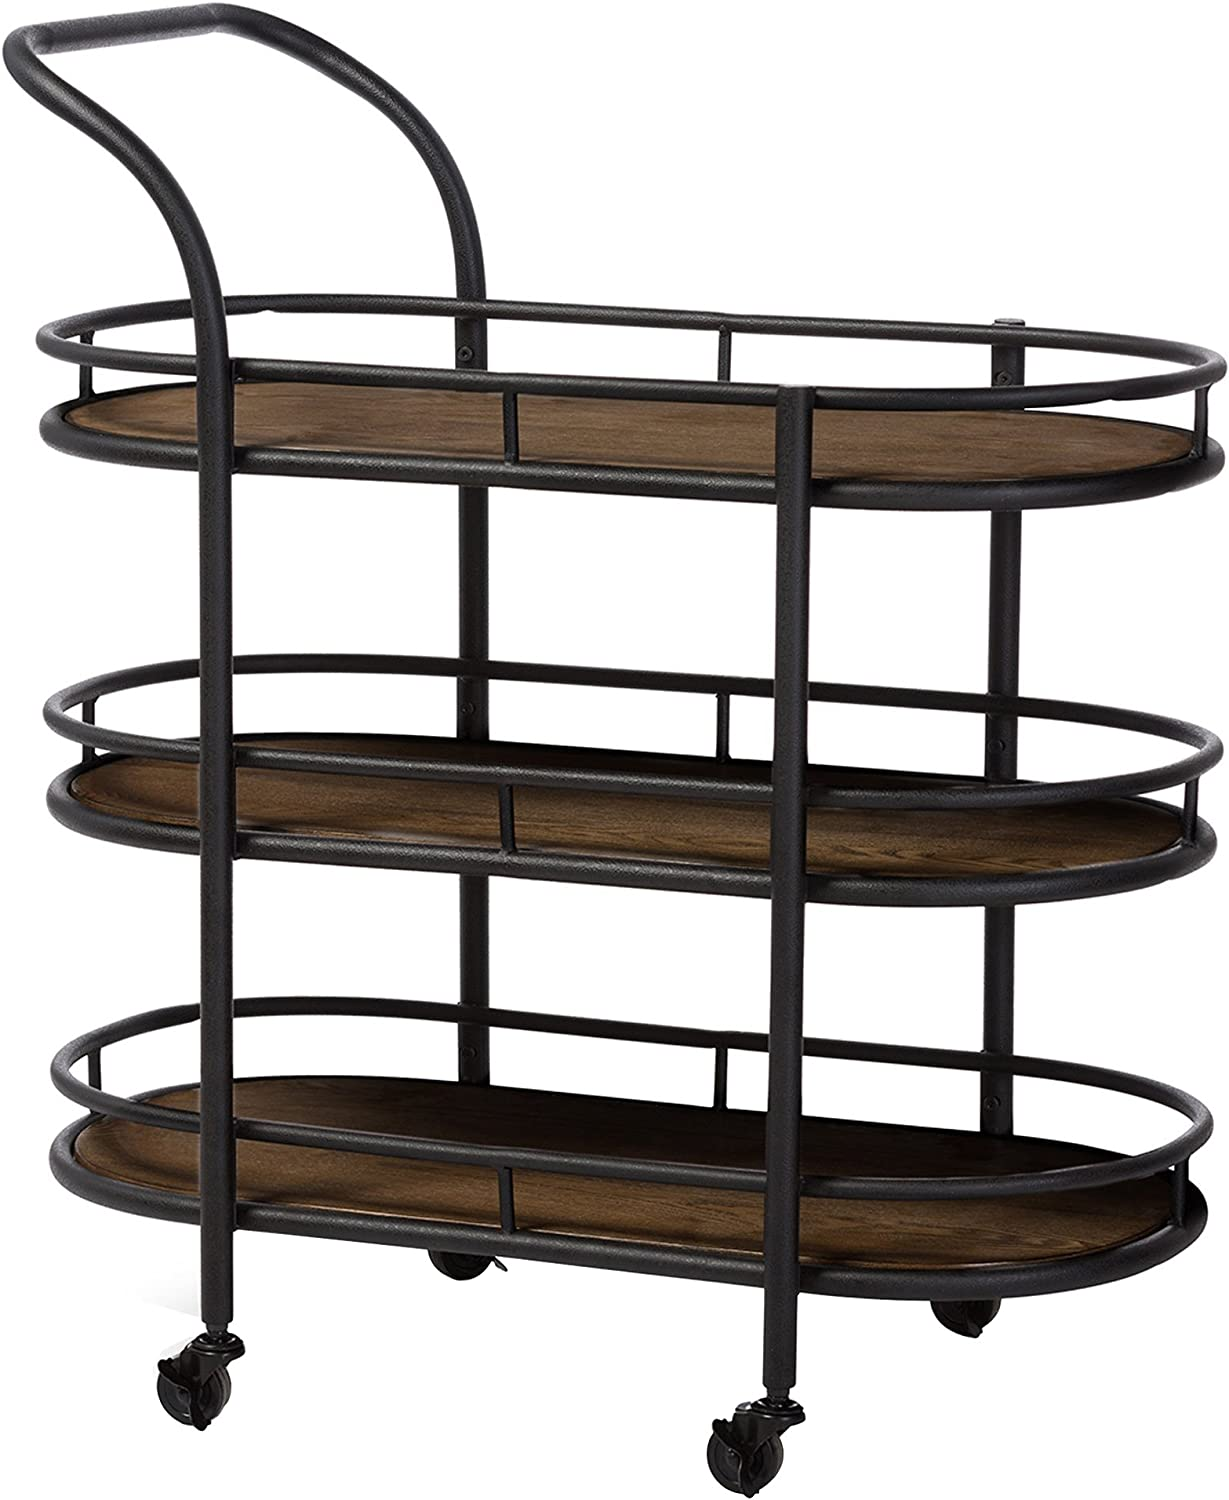 Baxton Studio Karlin Rustic Industrial Style Antique Textured Metal Distressed Wood Mobile Kitchen Bar Serving Wine Cart, Black